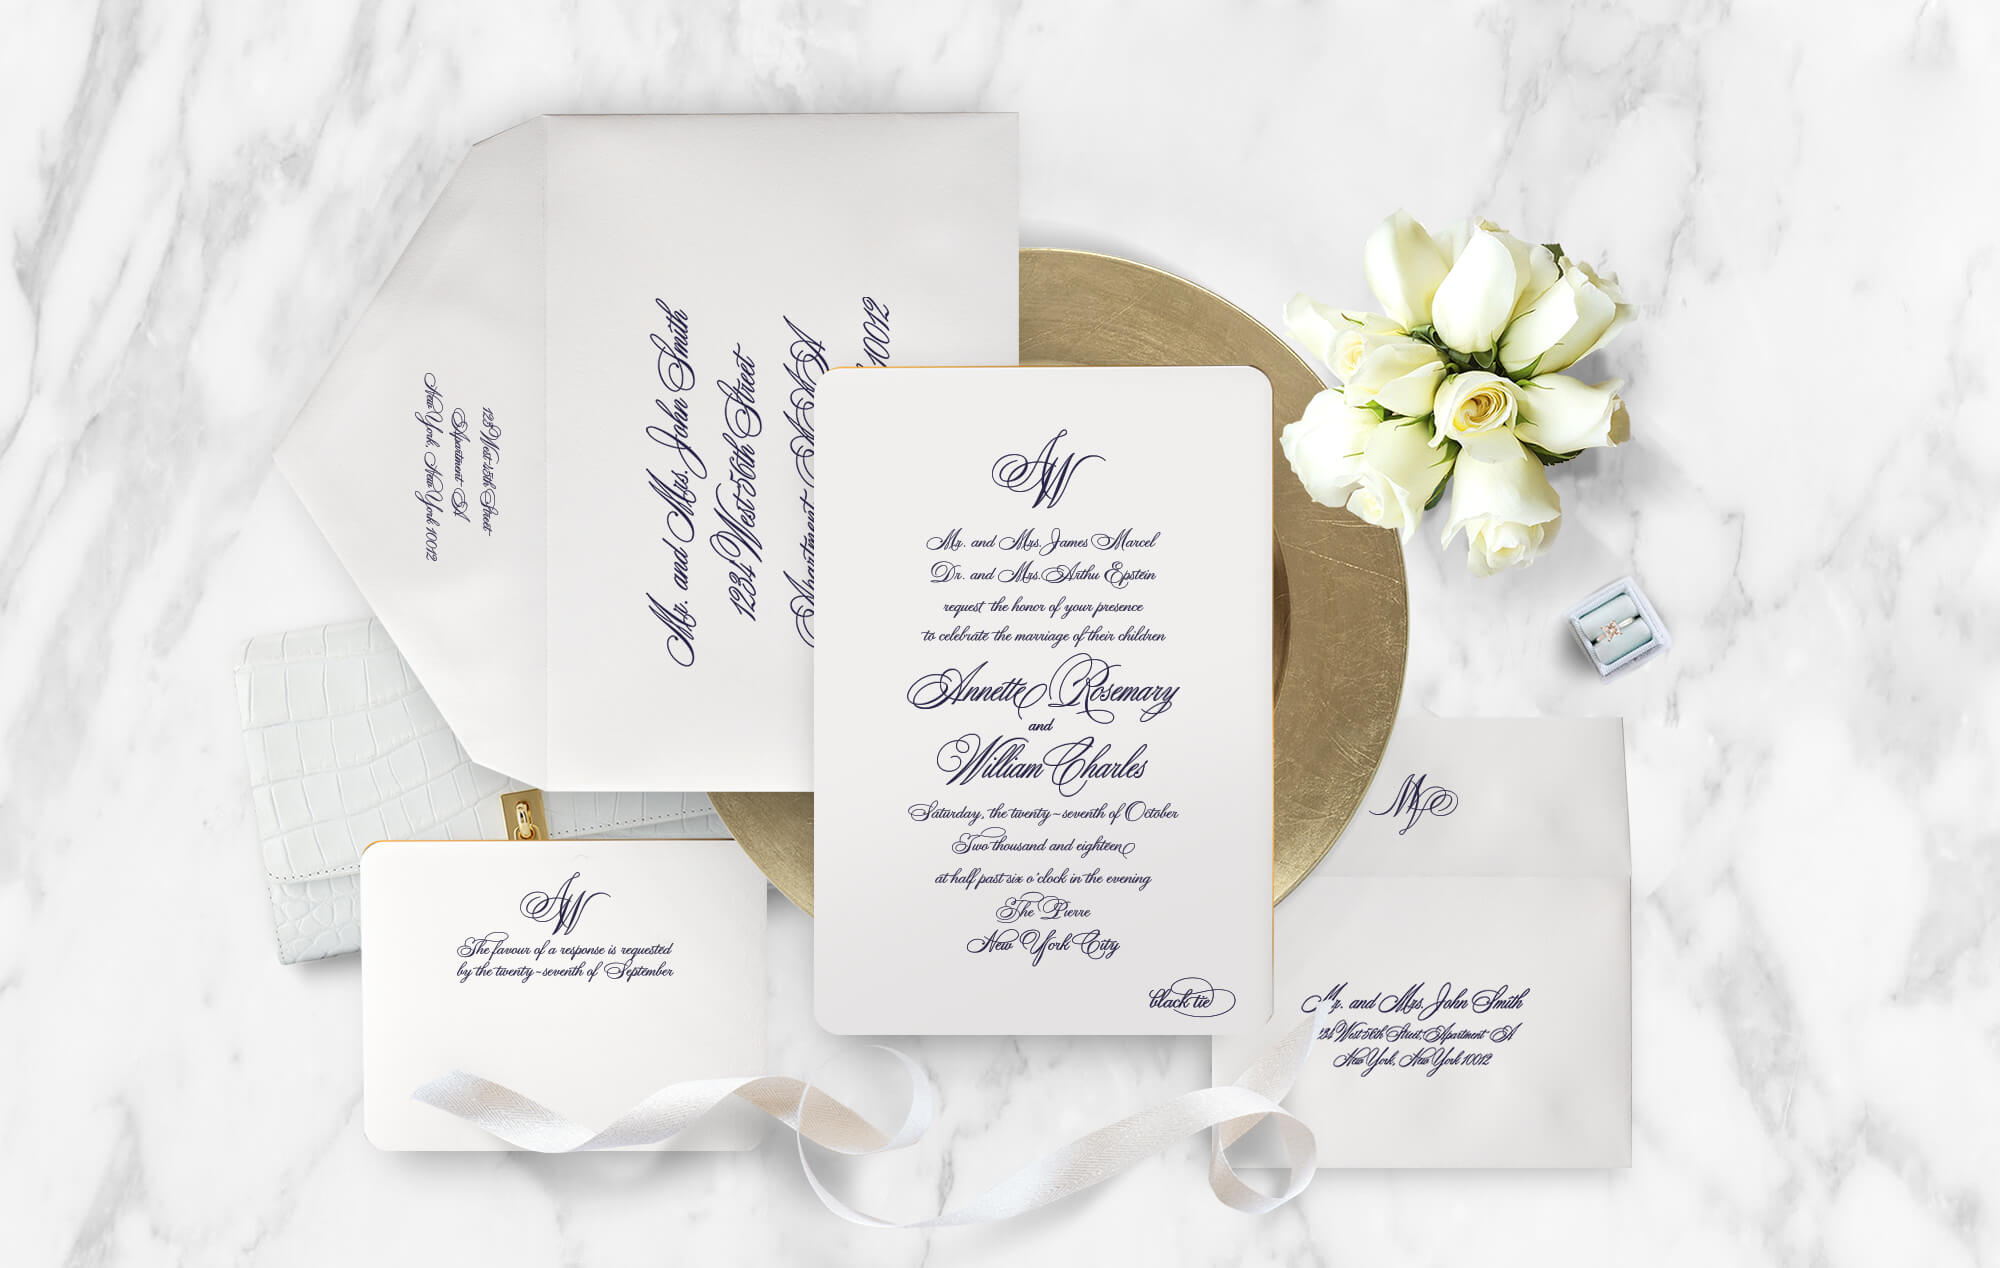 Classic engraved wedding invitation